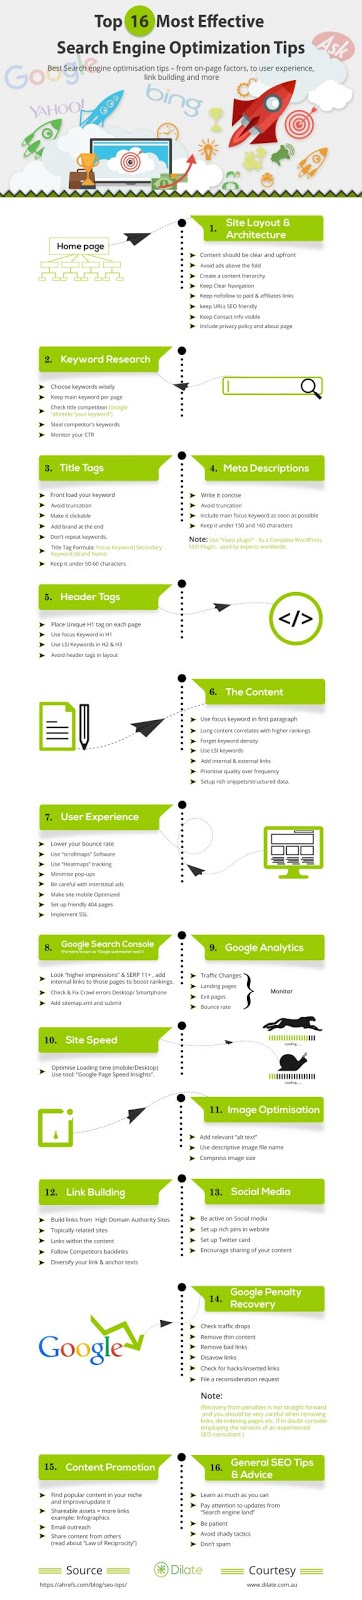 Top 16 Most Effective Search Engine Optimization Tips